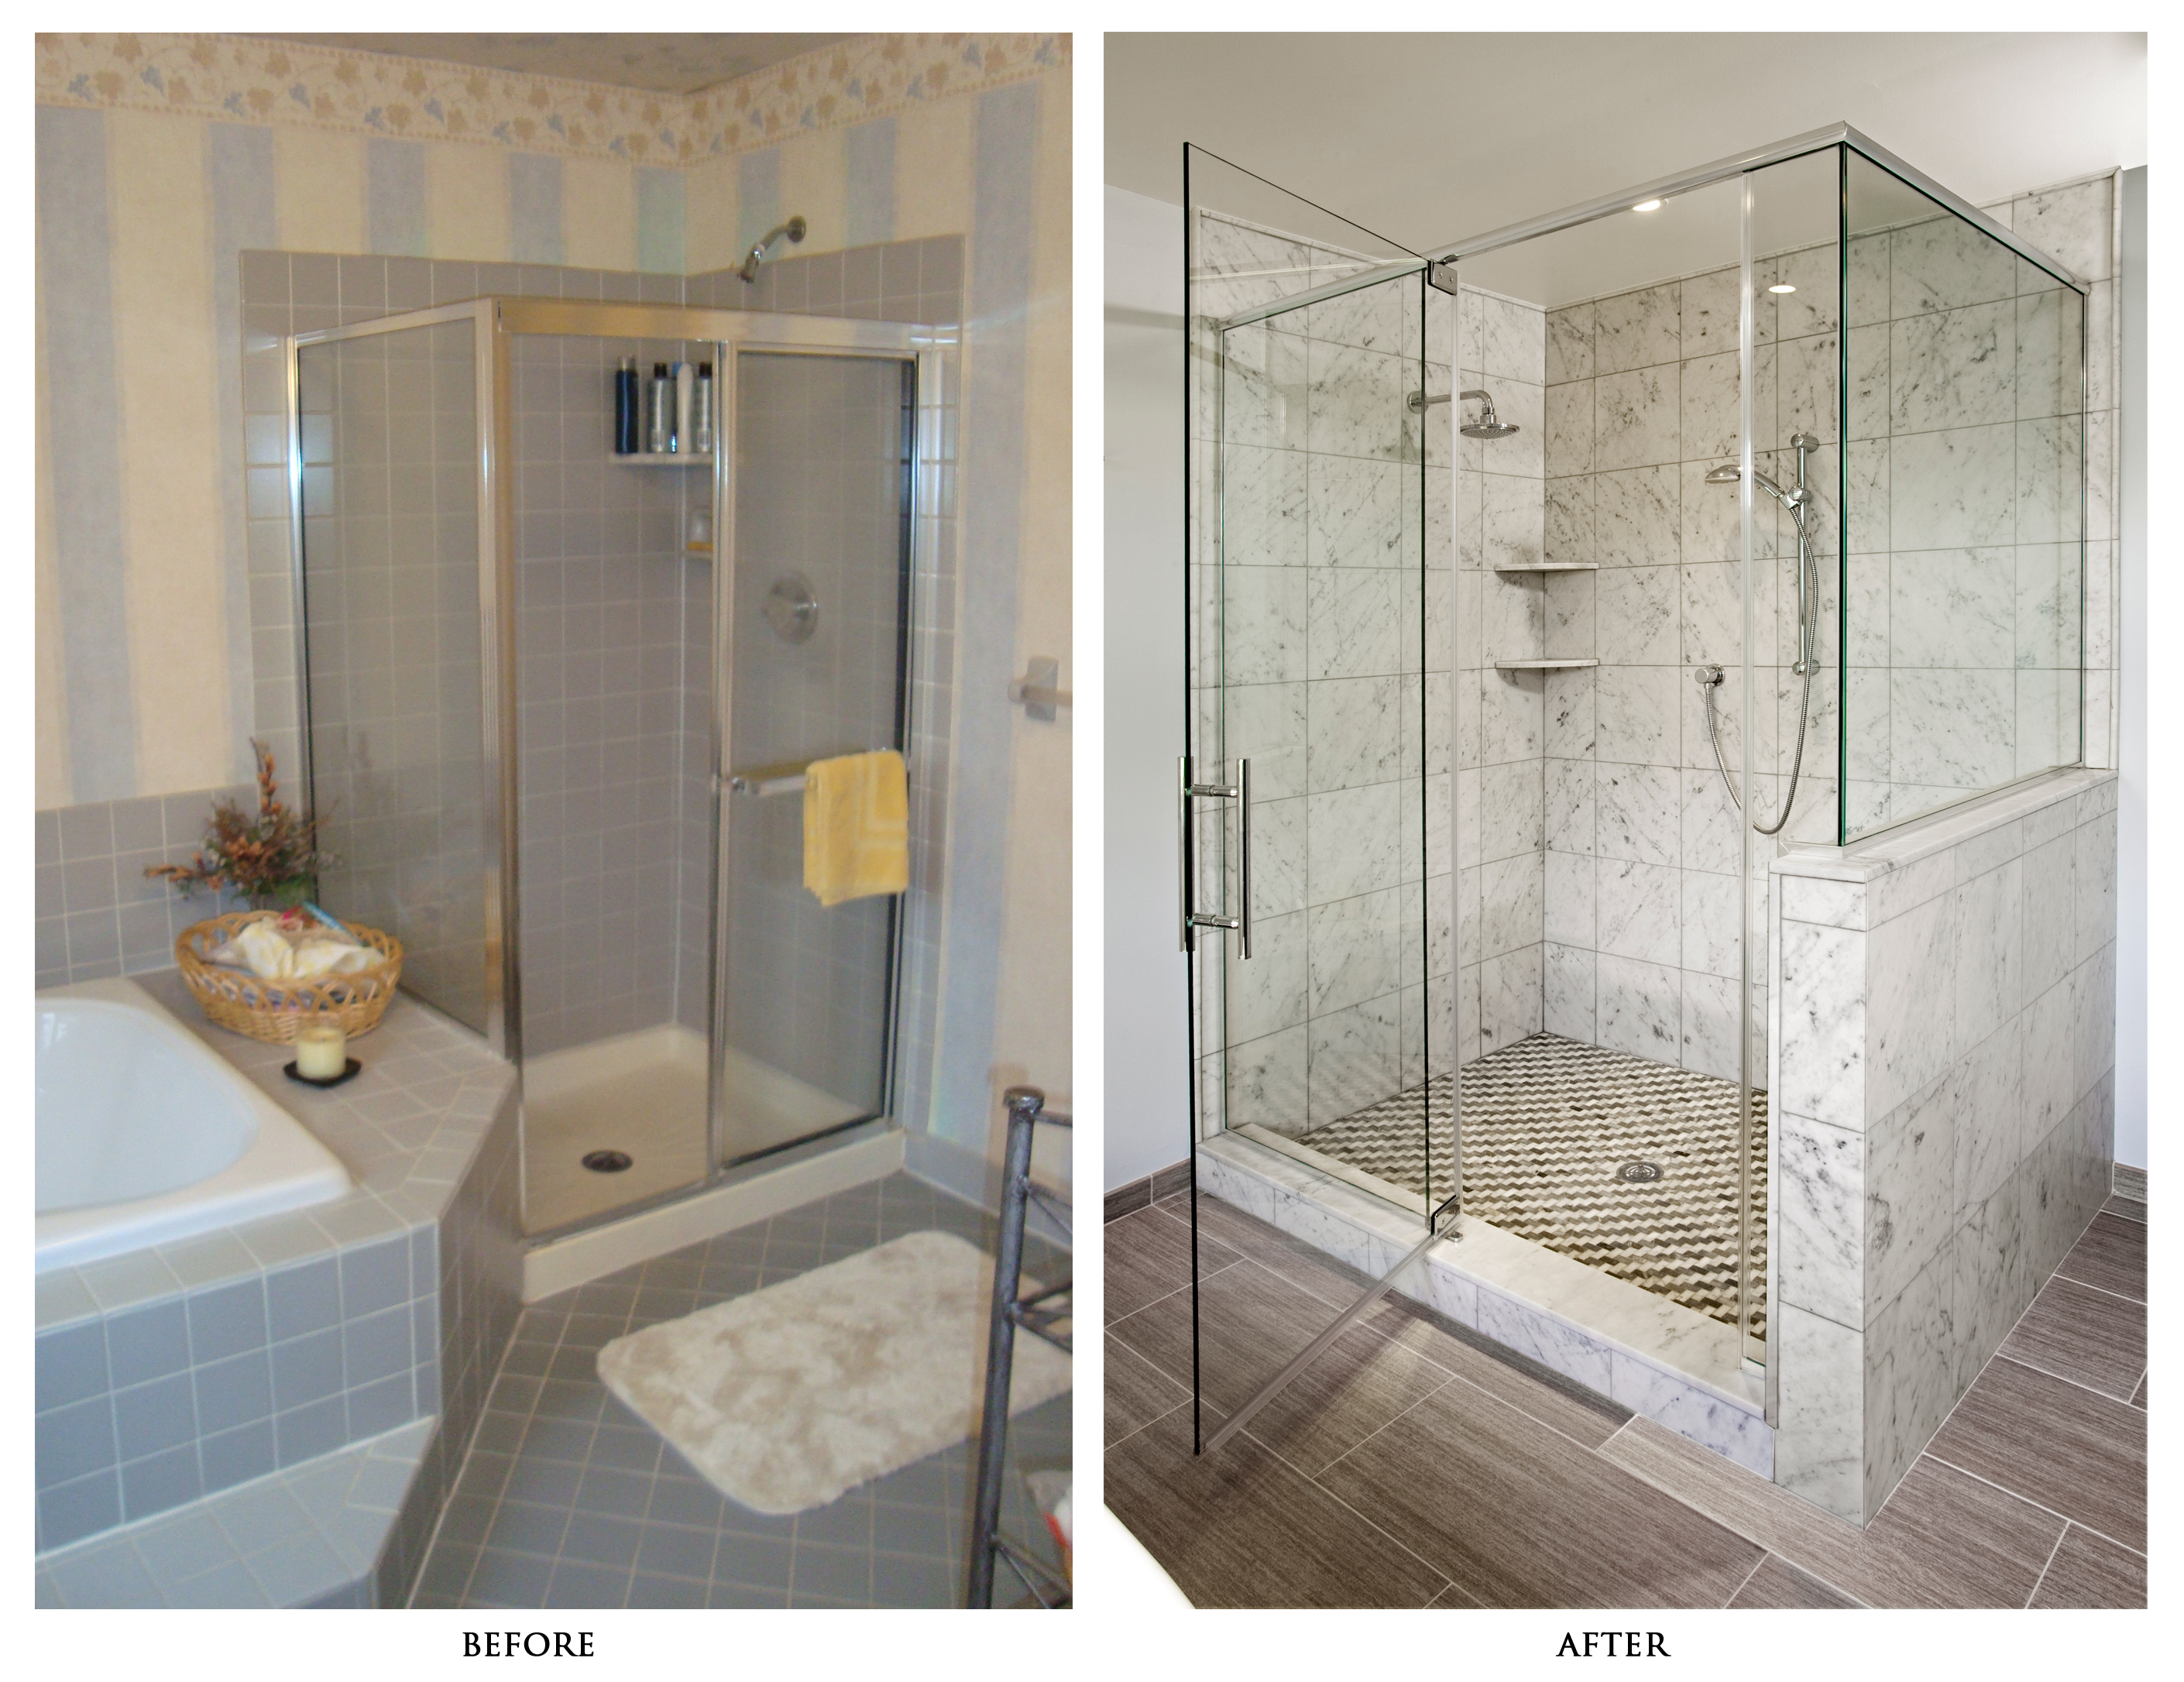 Signs Its Time To Remodel Your Bathroom Rub A Dub Tub Reglazing - Bathroom shower renovations photos